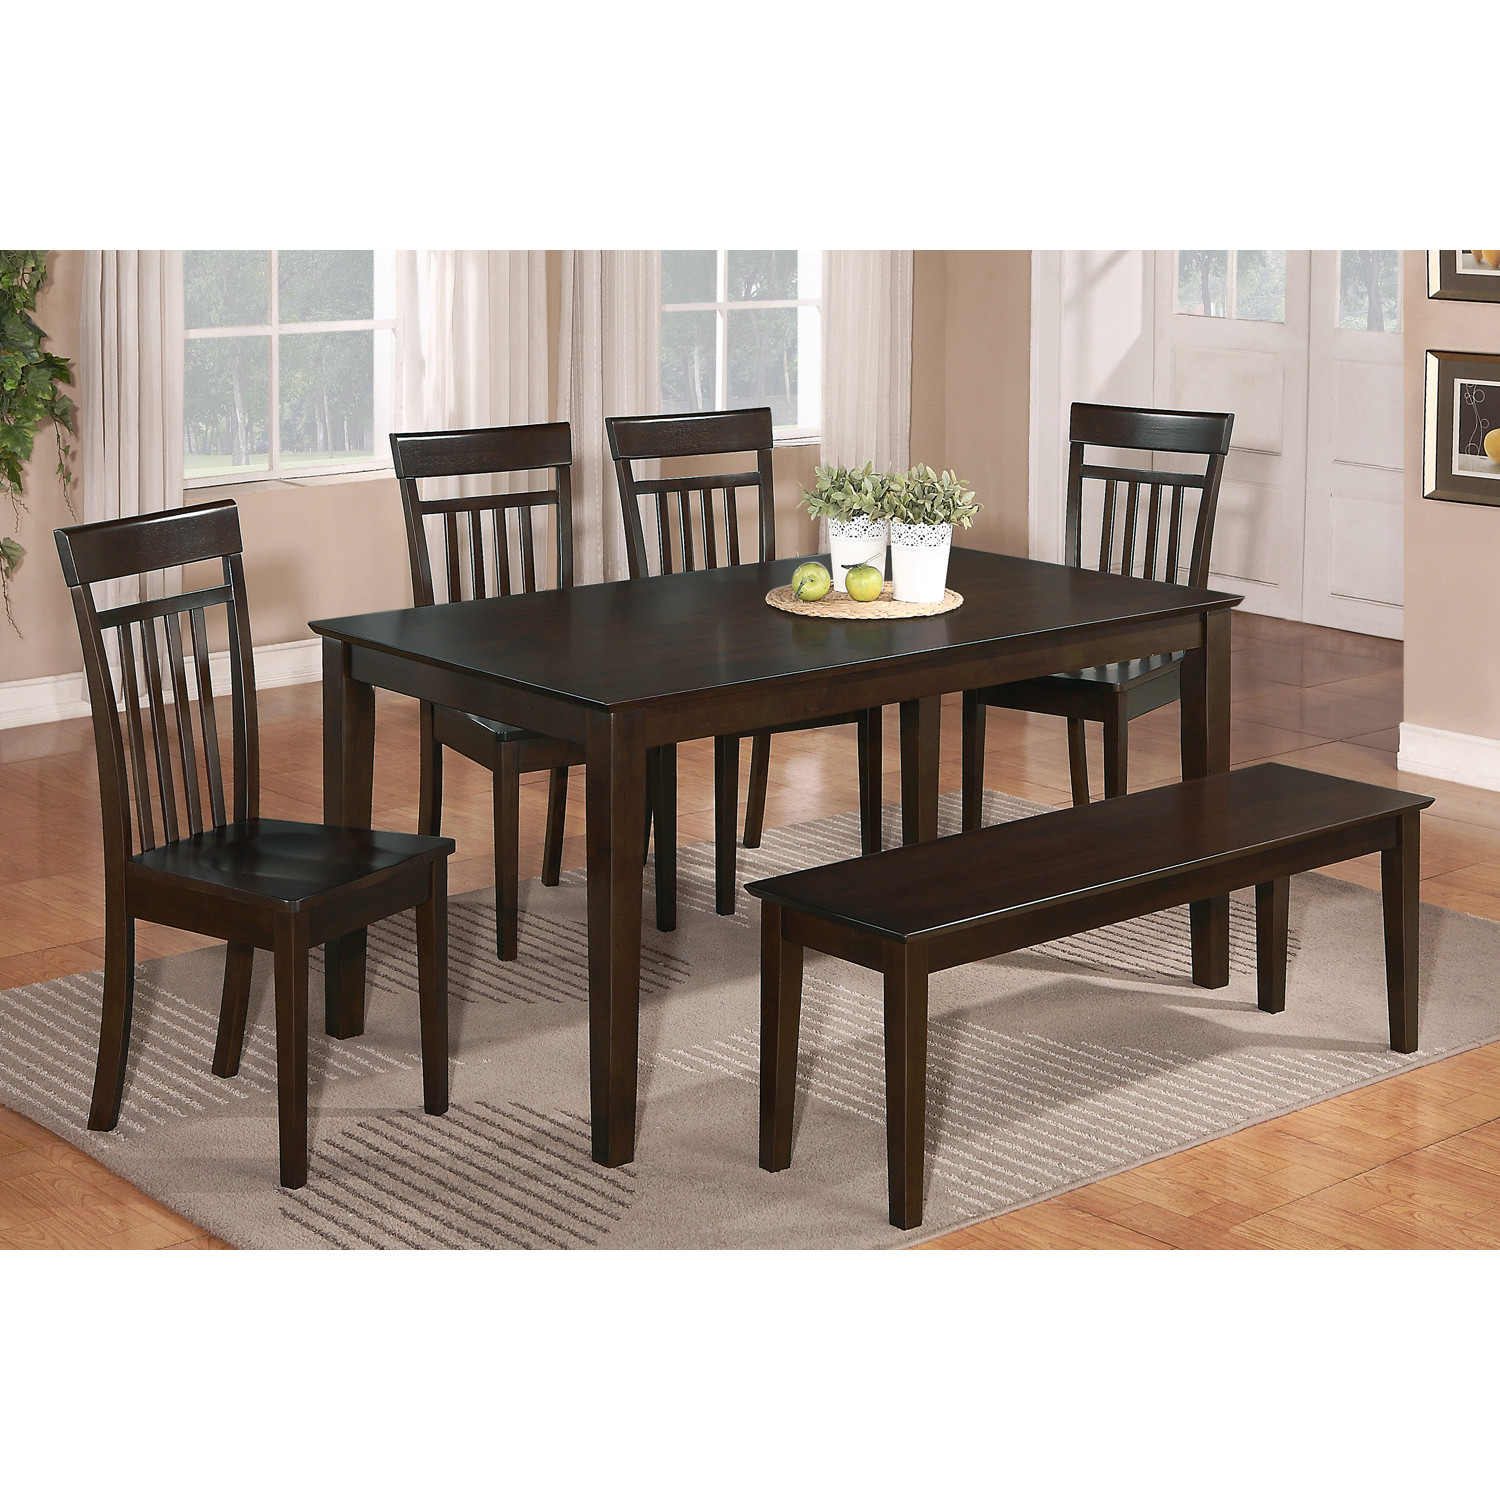 dining room table and chair sets awesome dinette sets with bench homesfeed 6058